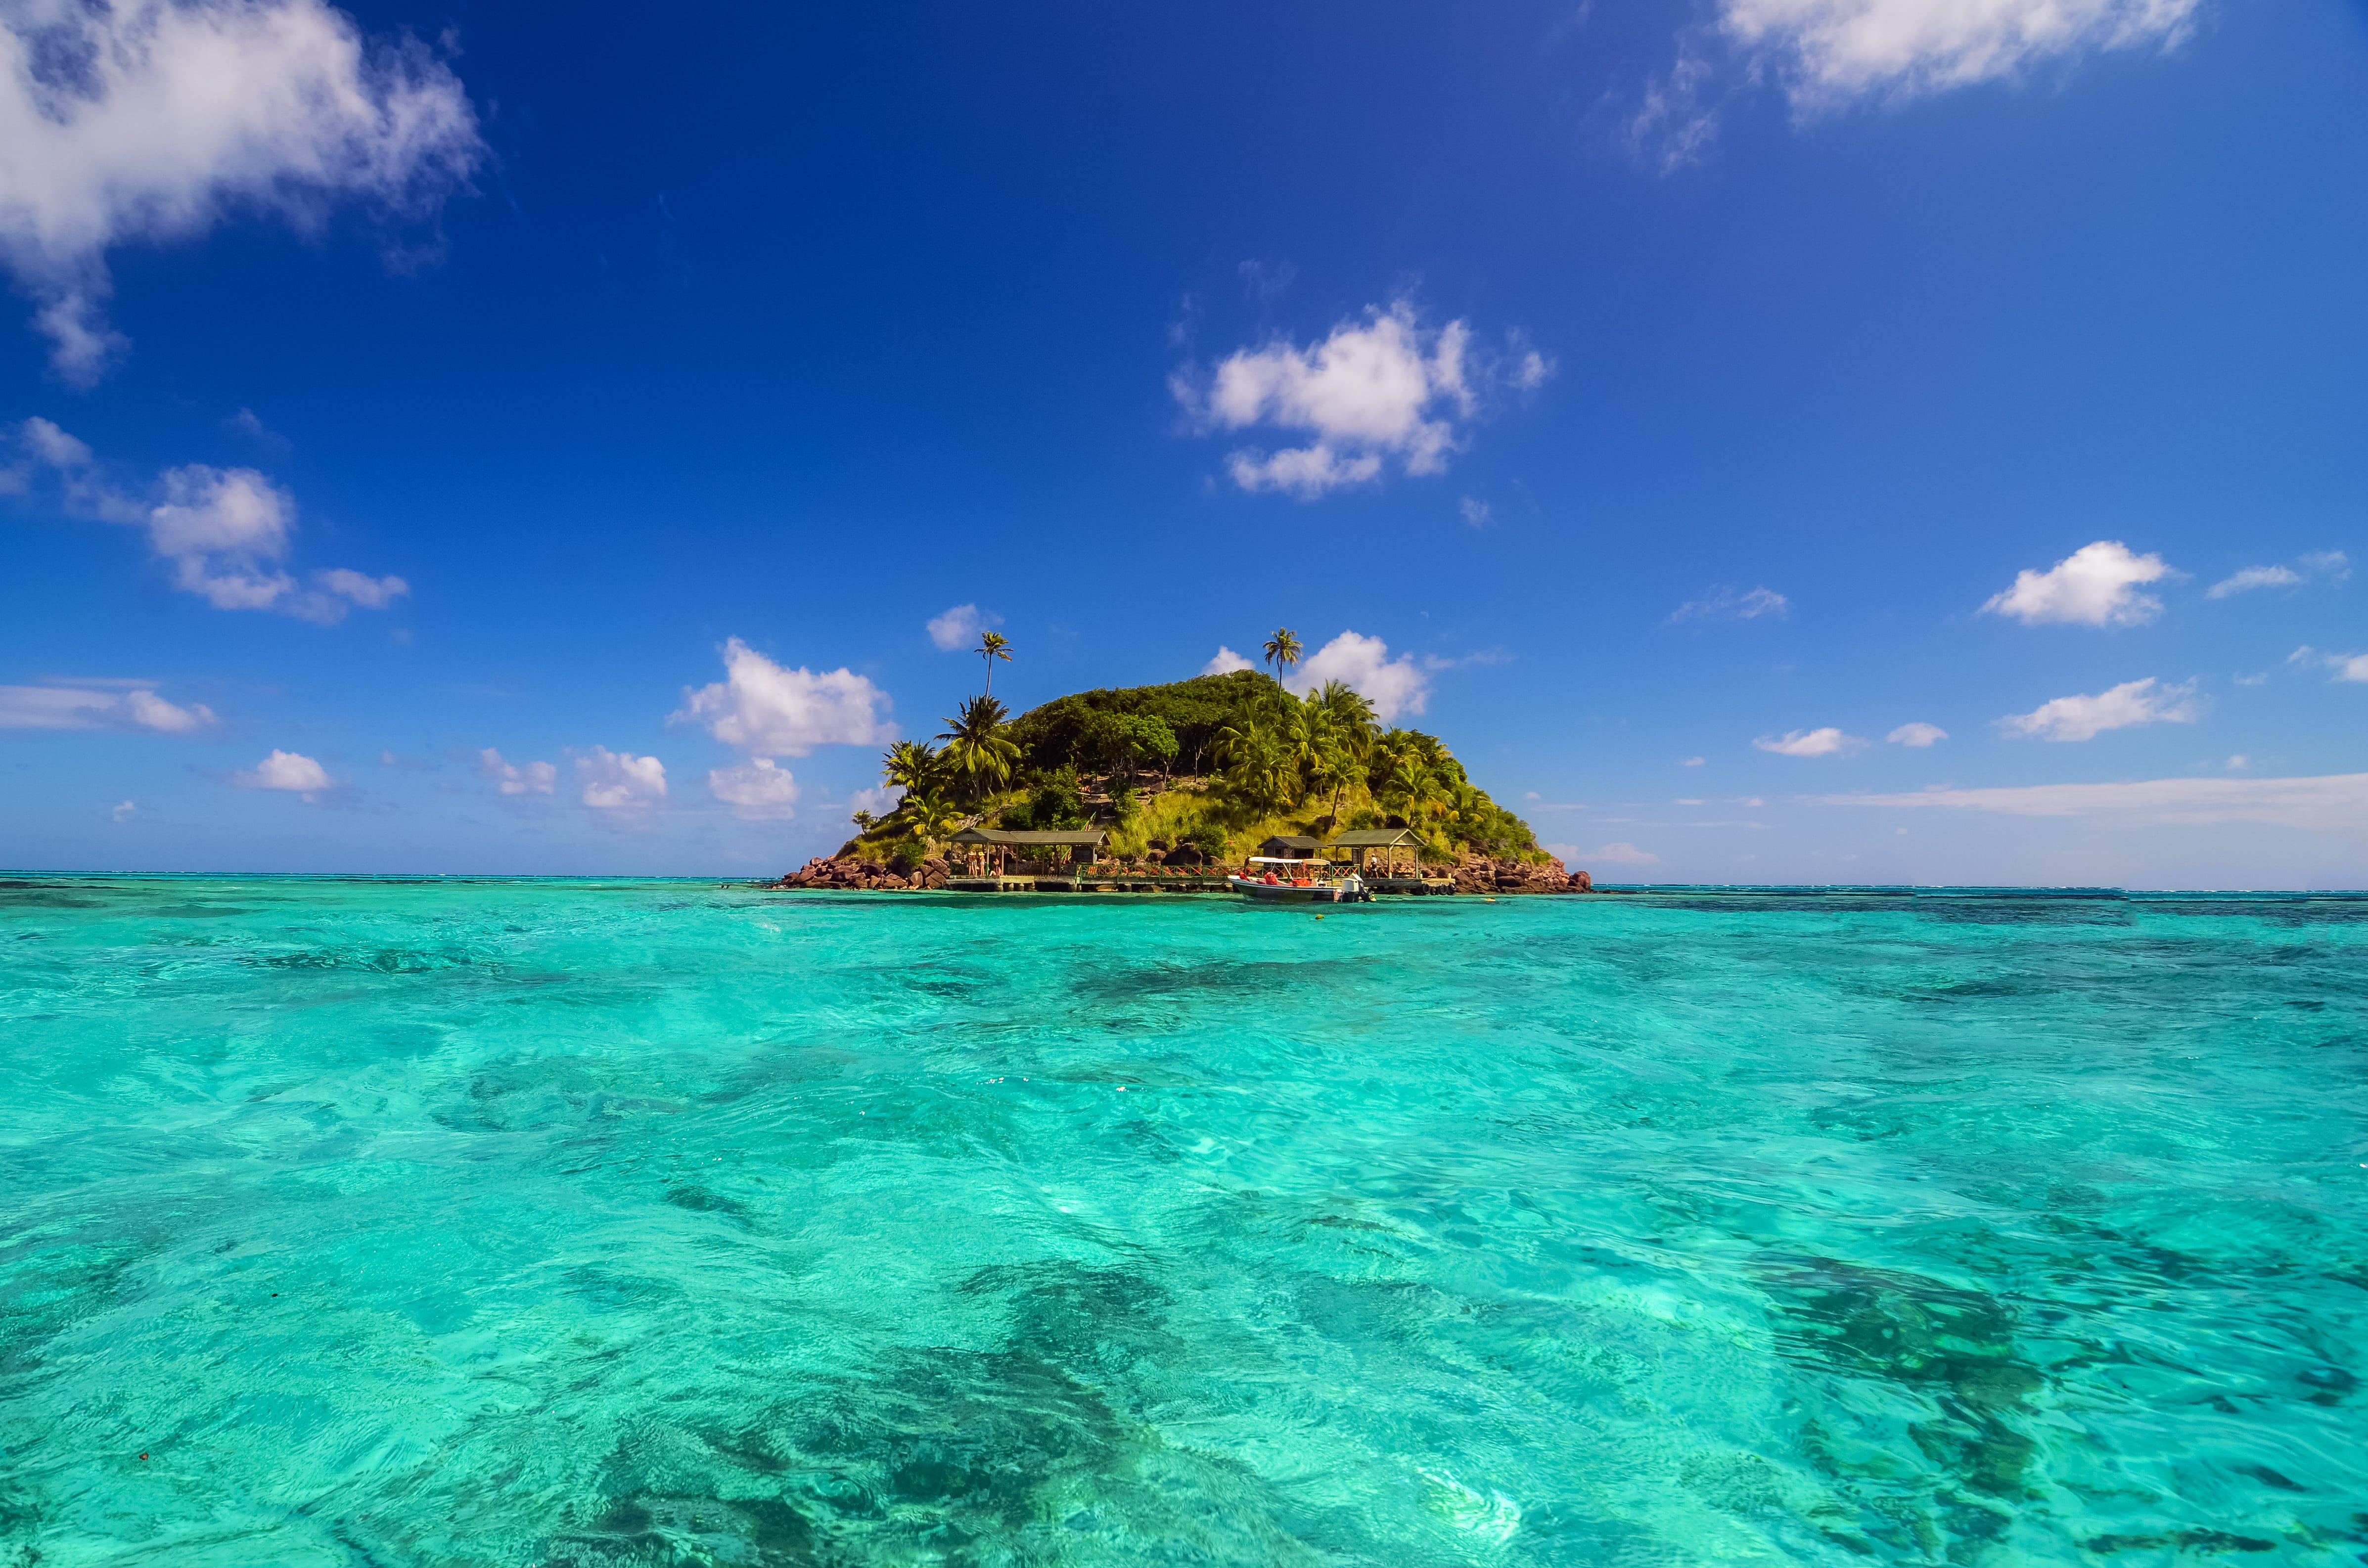 Best Colombia Islands to Visit